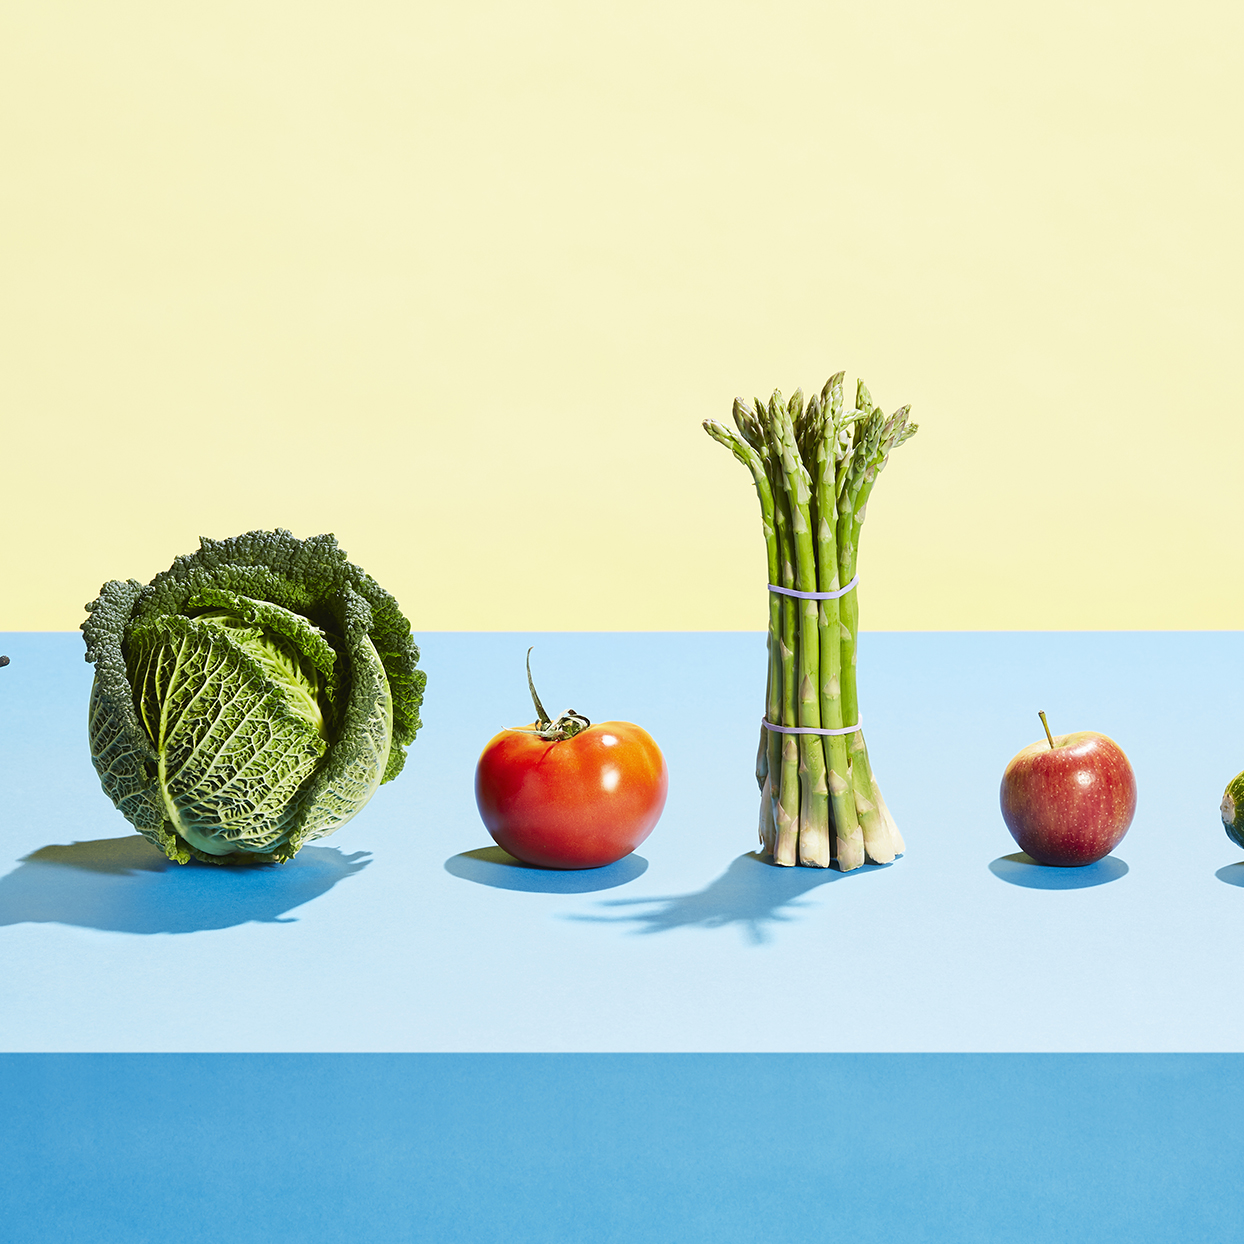 10 Keto-Friendly Vegetables You Should Eat More Of